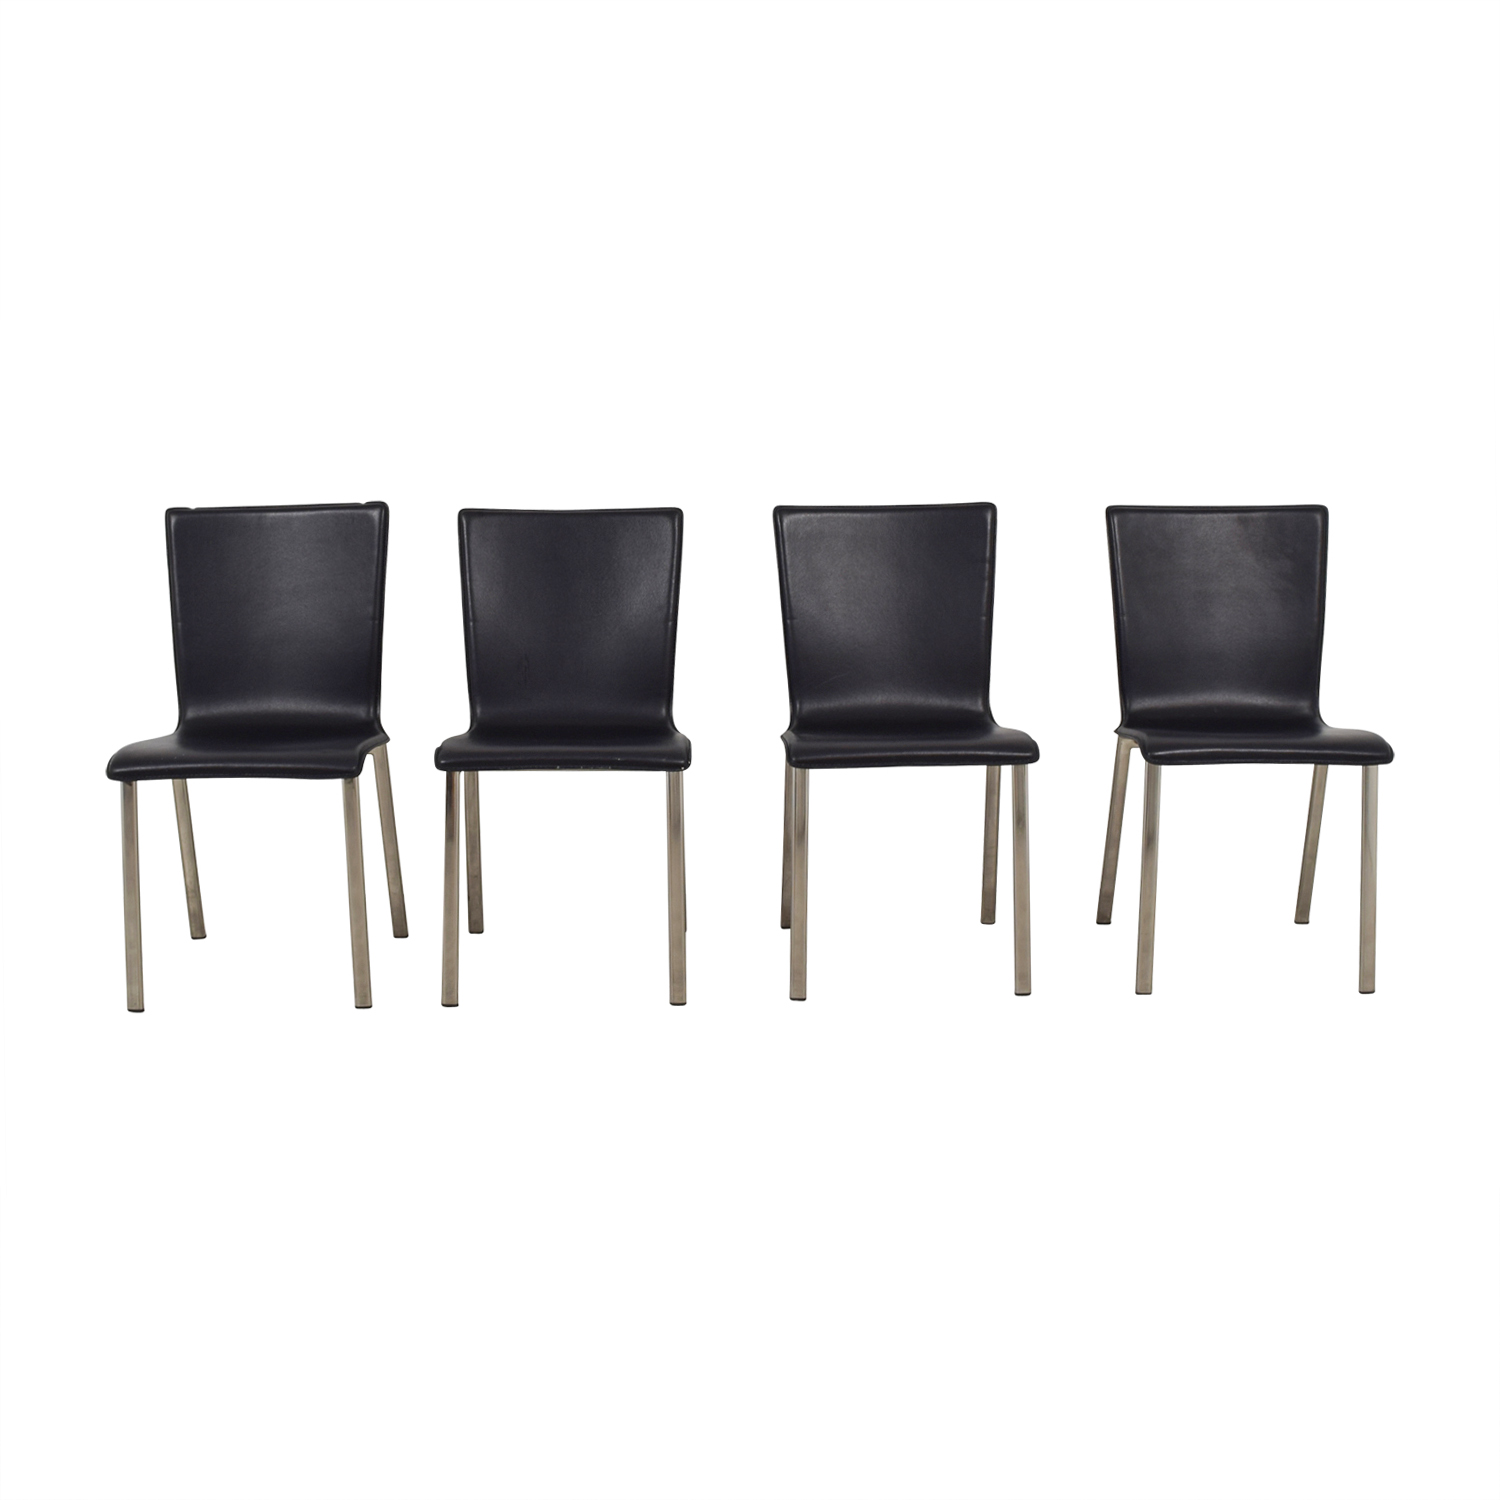 IKEA IKEA Black with Chrome Dining Chairs coupon